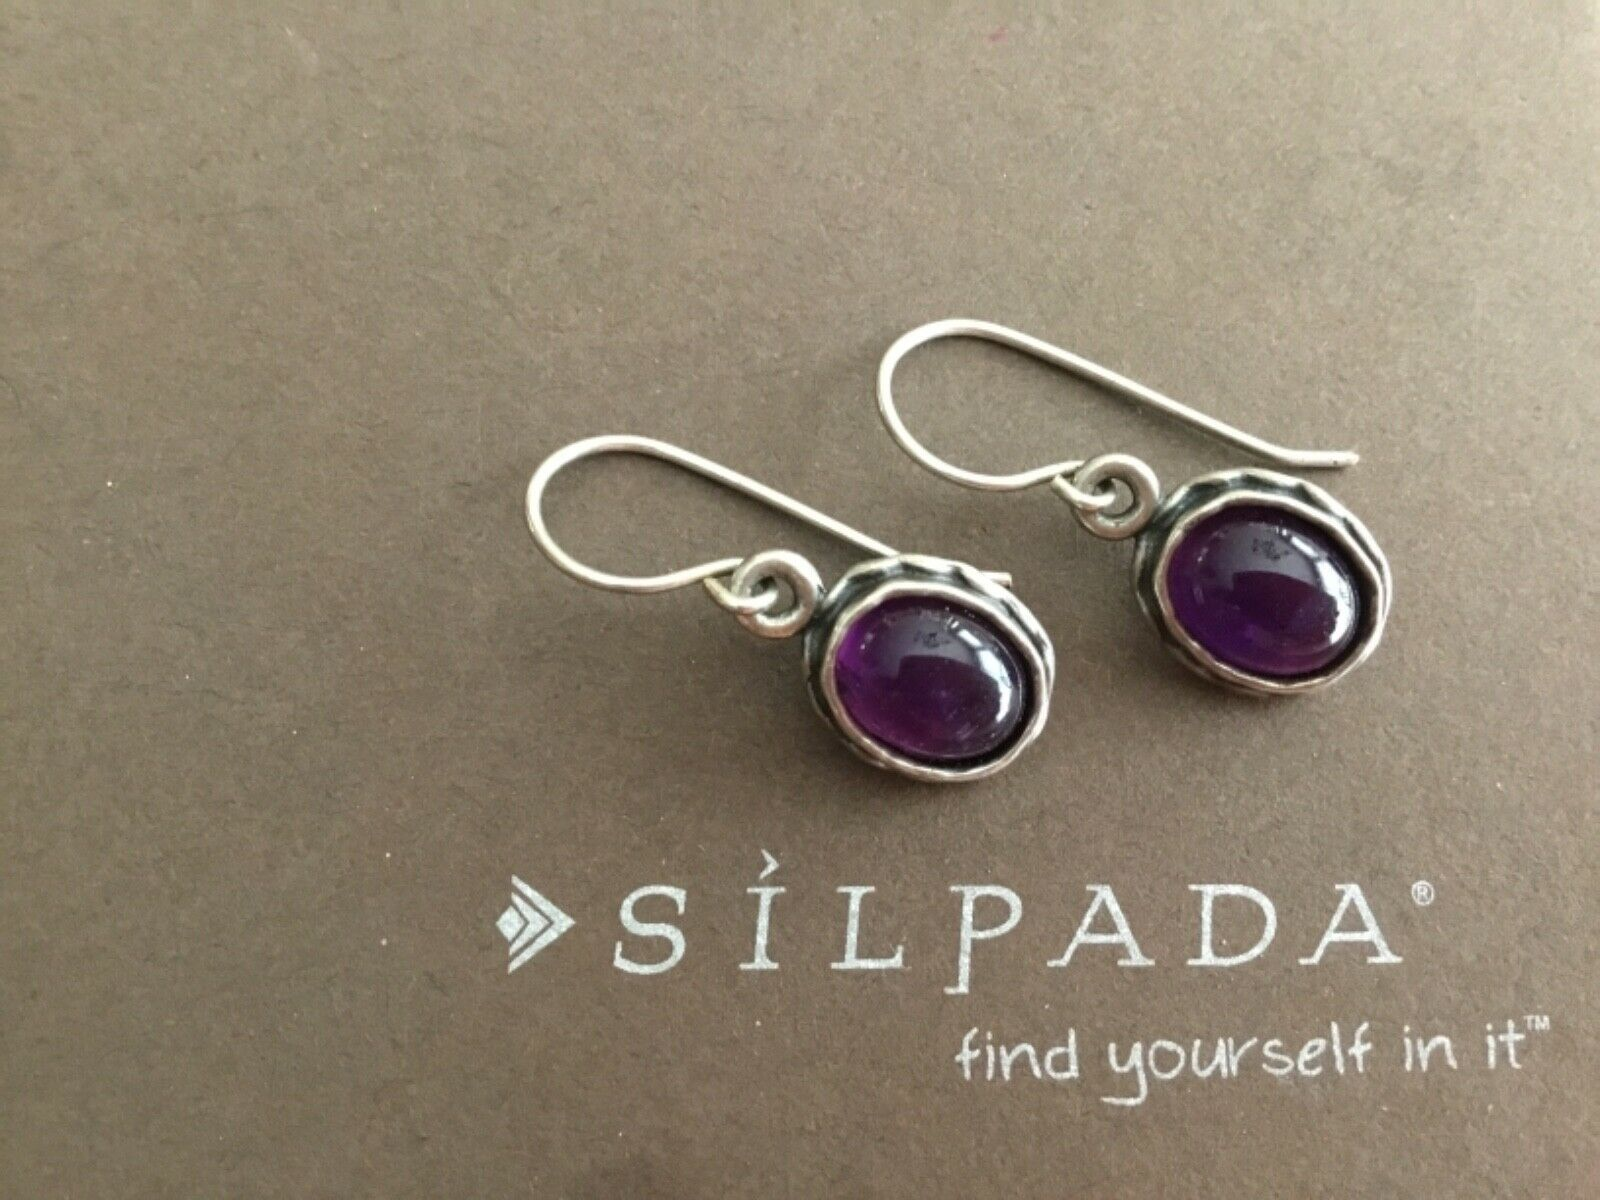 Primary image for Silpada Sterling Silver Oval Purple Amethyst Earrings W1277 Bezel Set Rare .925